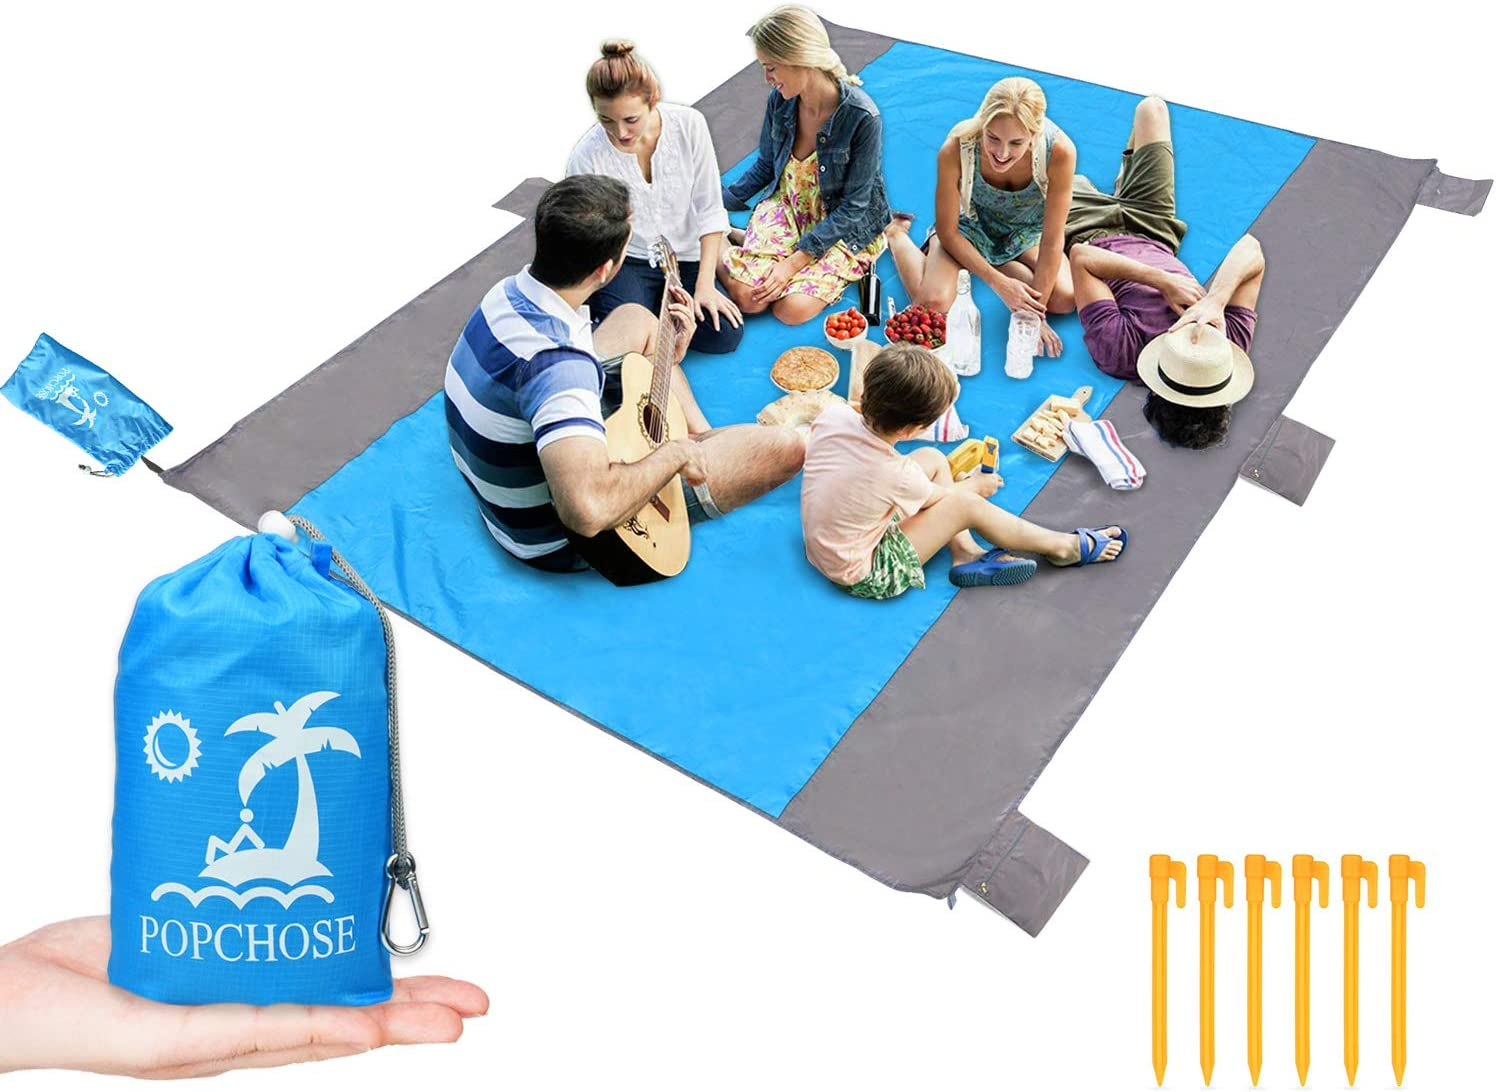 POPCHOSE Sandfree Beach Blanket, Large Sandproof Beach Mat for 4-7 Adults, Waterproof Pocket Picnic Blanket with 6 Stakes, Outdoor Blanket for Travel, Camping, Hiking